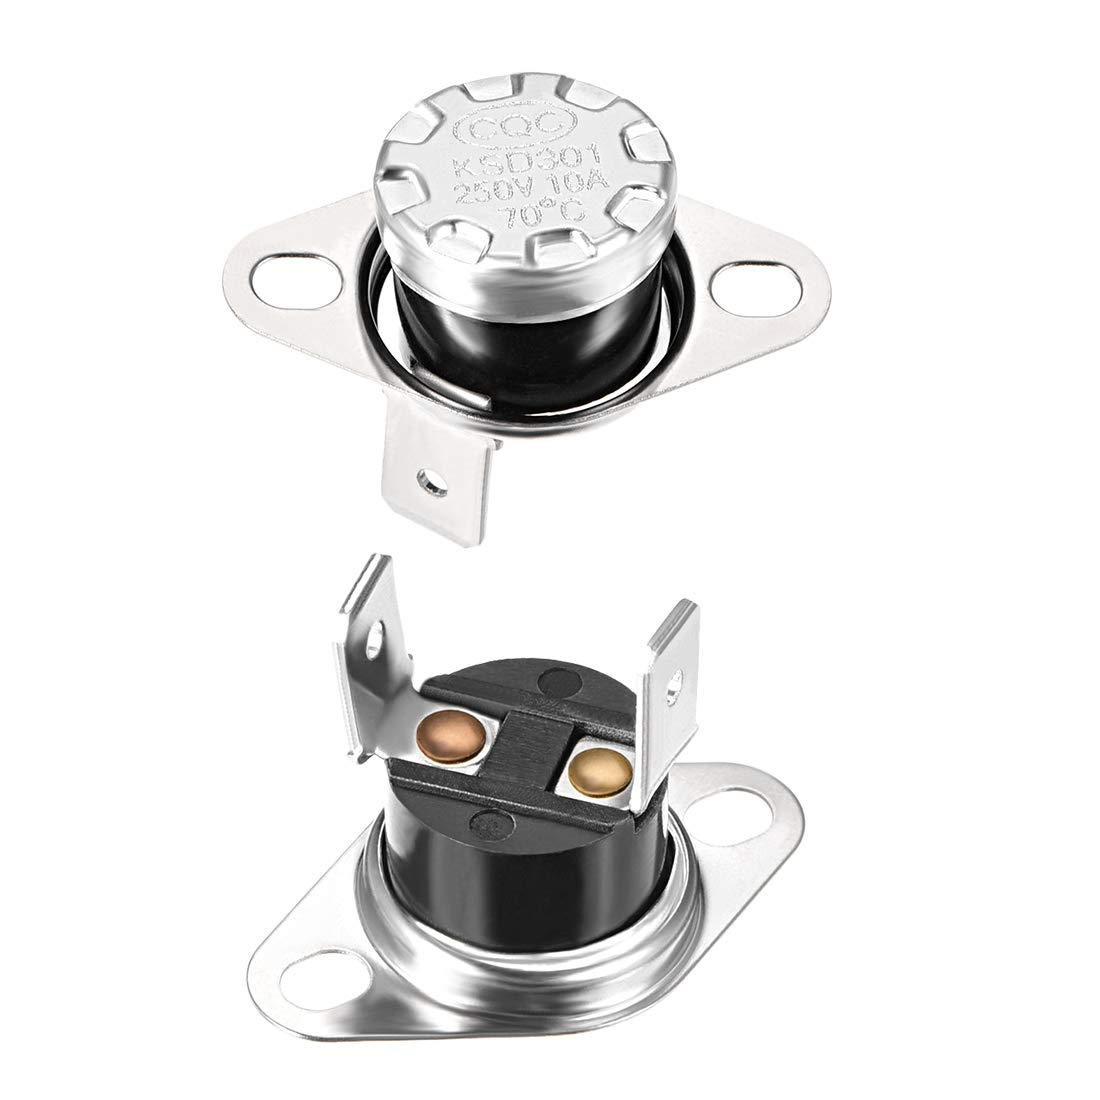 uxcell KSD301 Thermostat Adjust Snap Disc Limit Control Switch Microwave Thermostat Thermal Switch 60/°C 10A Normally Open N.O 2pcs